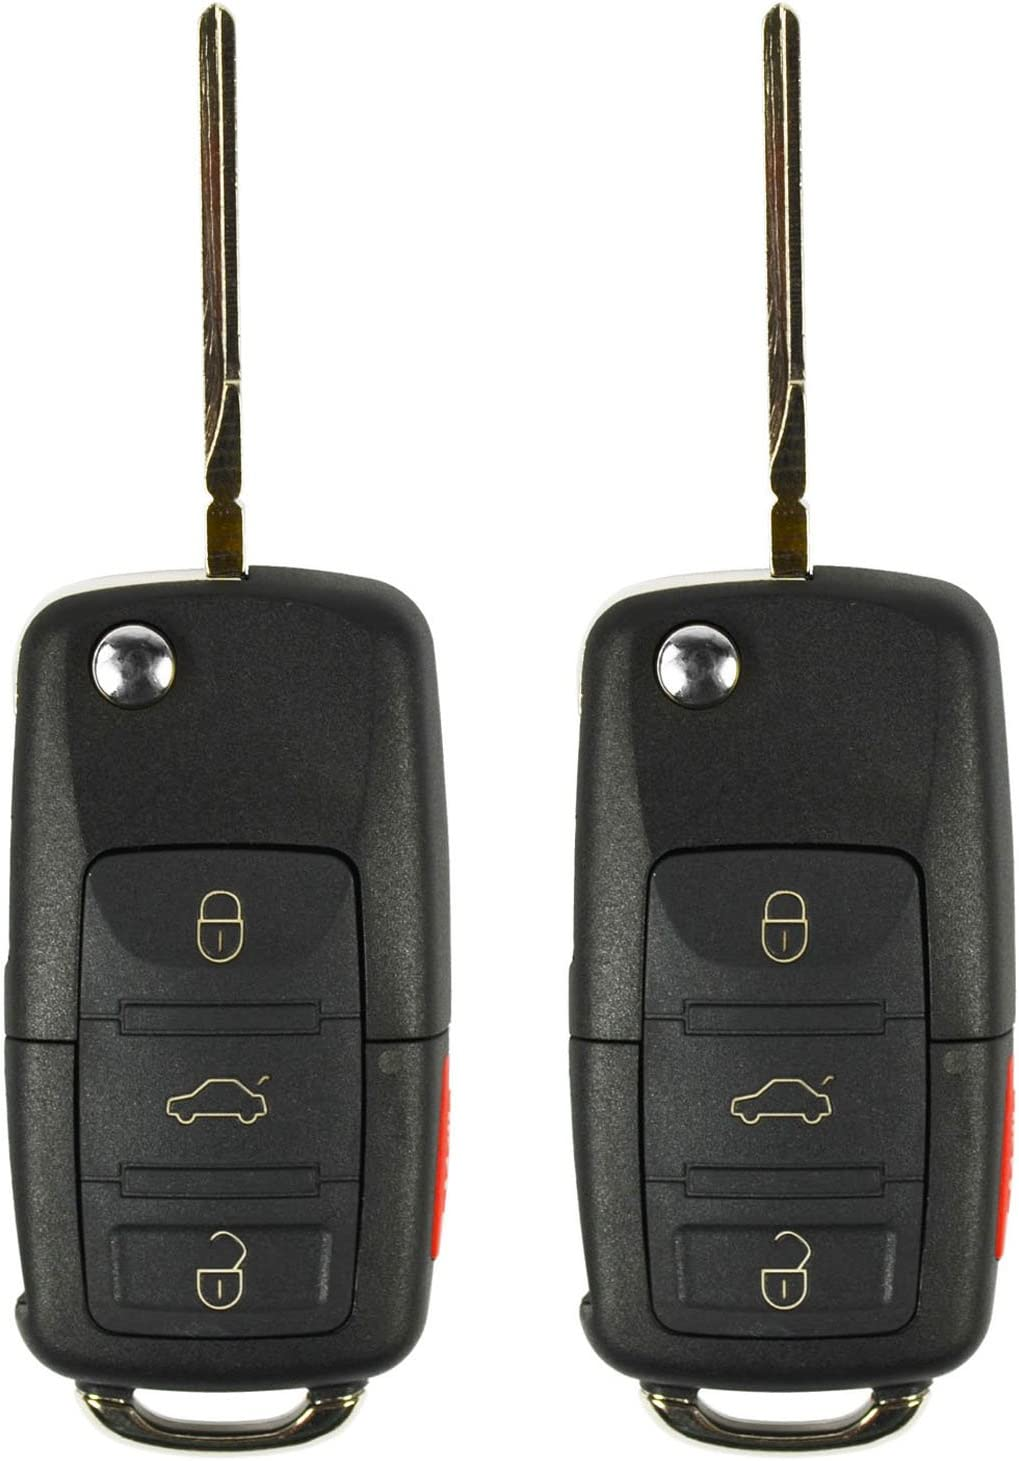 ECCPP Replacement fit for Uncut Keyless Entry Remote Control Car Key Fob Shell Case Volkswagen Beetle//Golf//Jetta//Passat HLO1J0959753AM Pack of 1